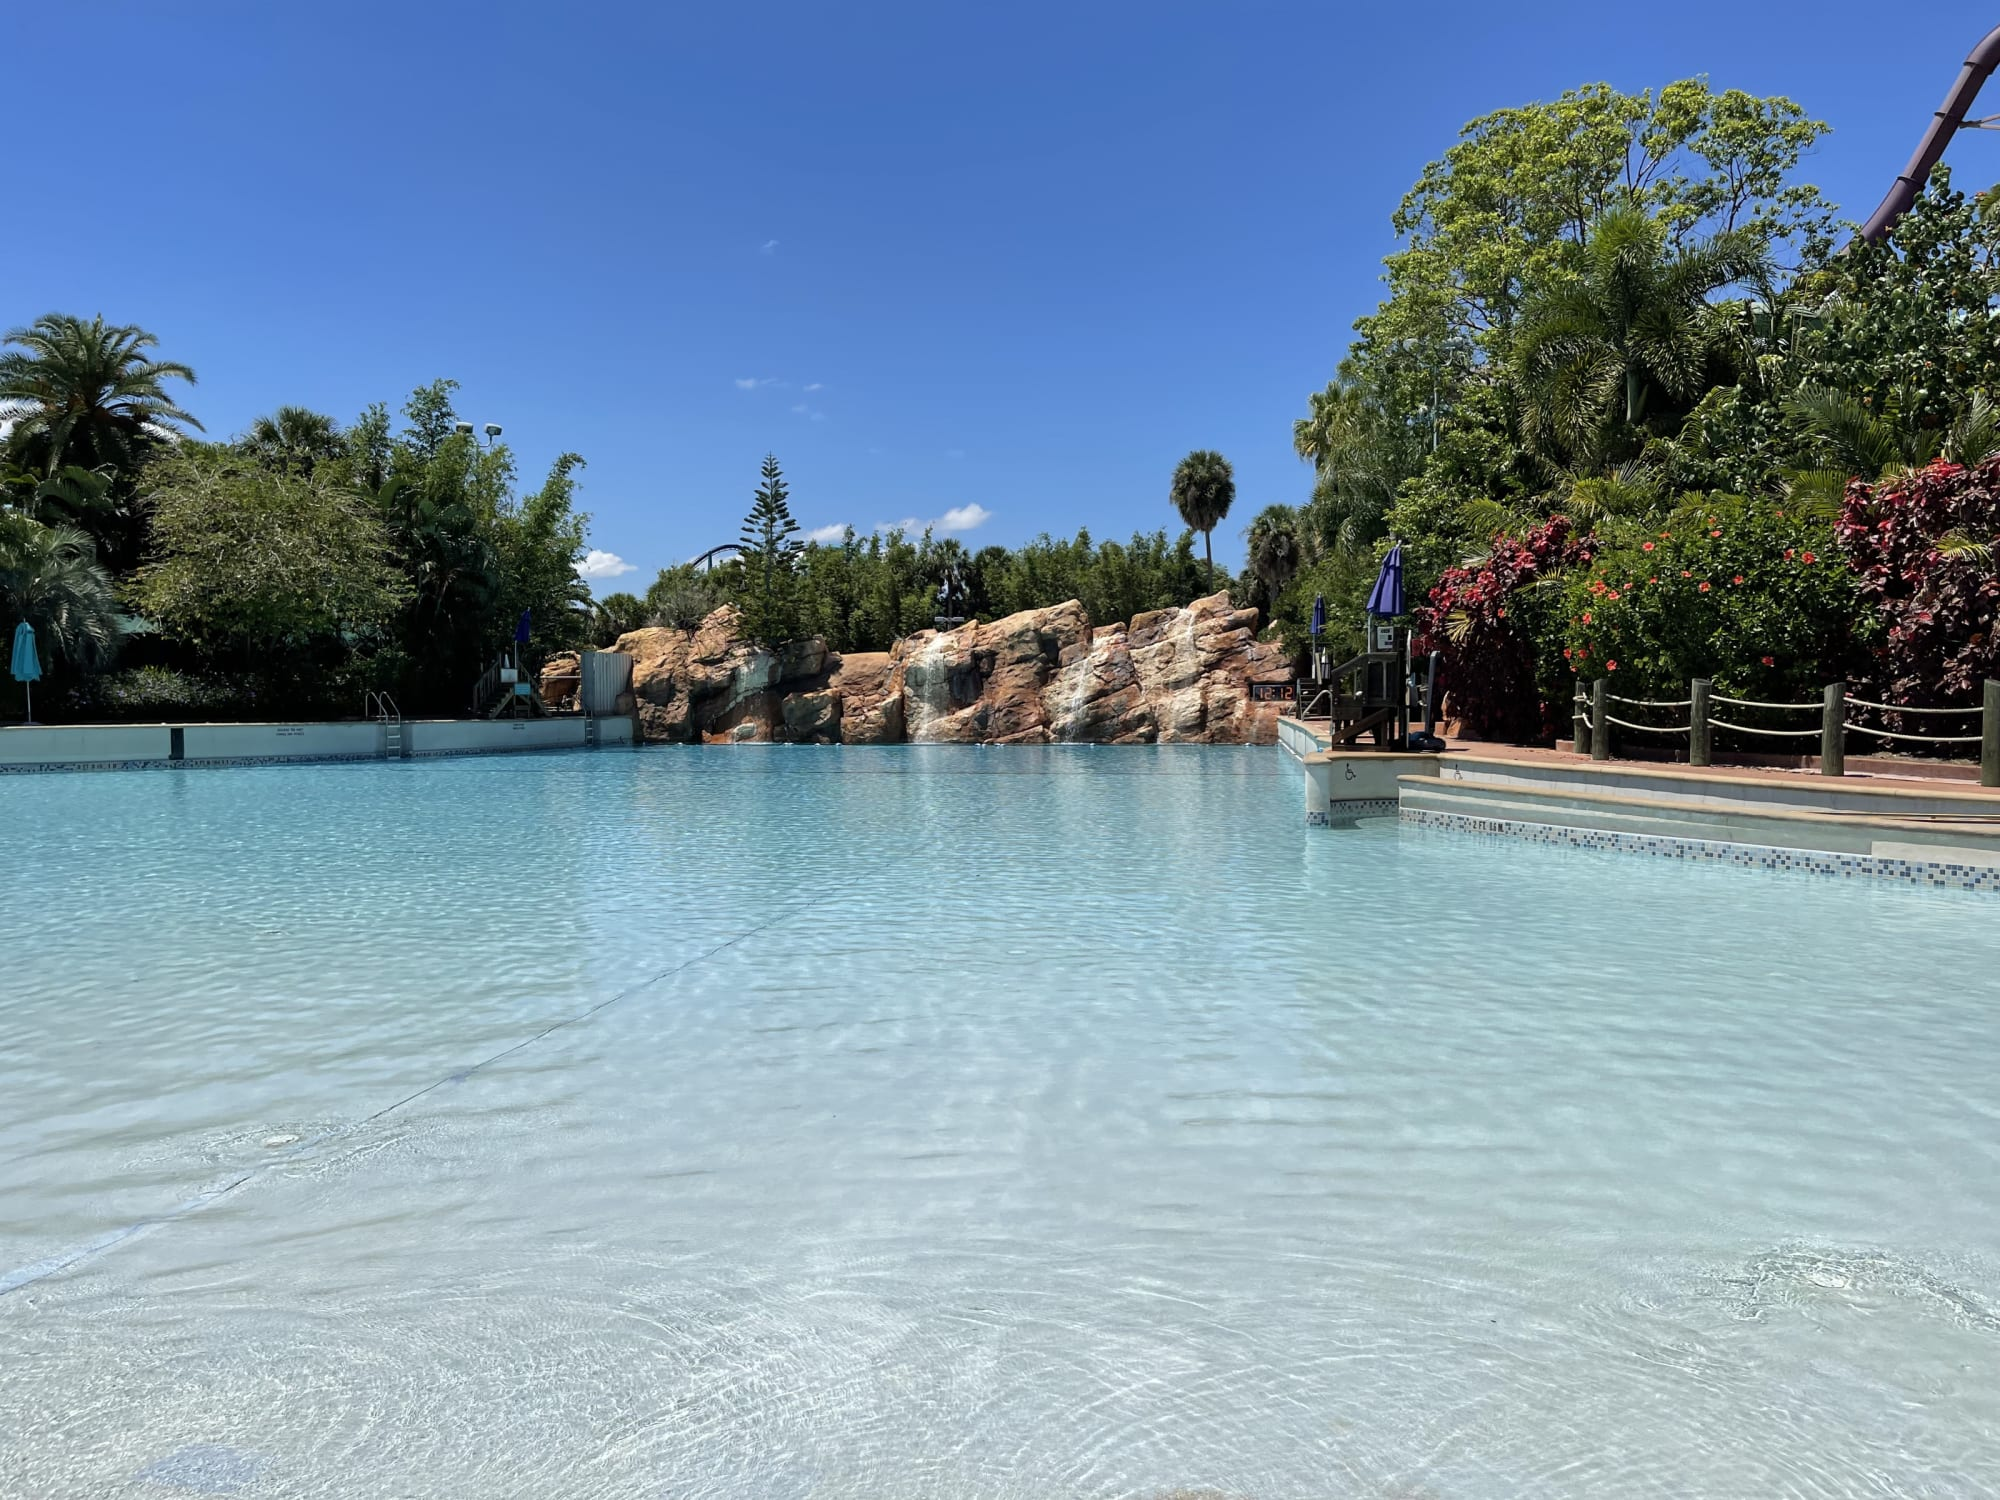 """Aquatica: The """"You have to be kidding me!"""" customer service review"""